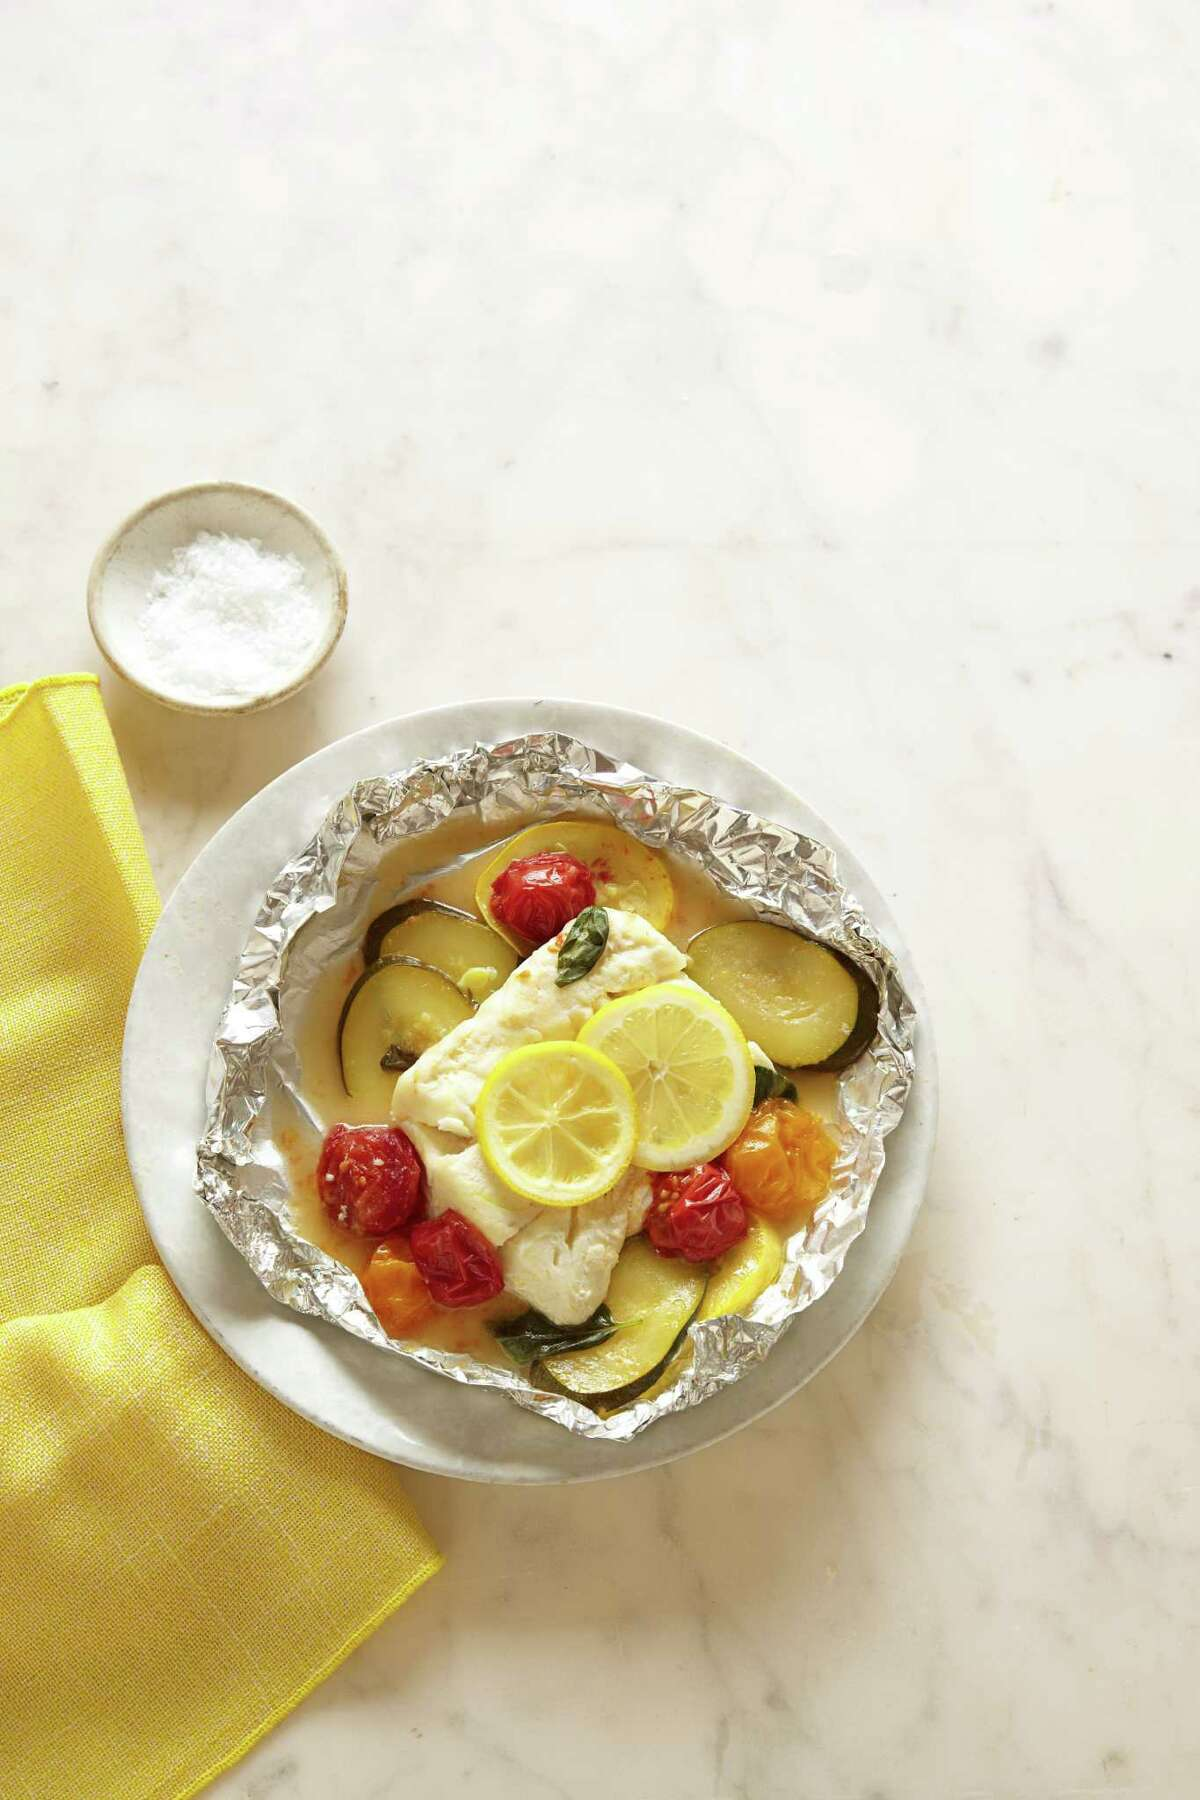 Steamed Summer Cod, from Good Housekeeping